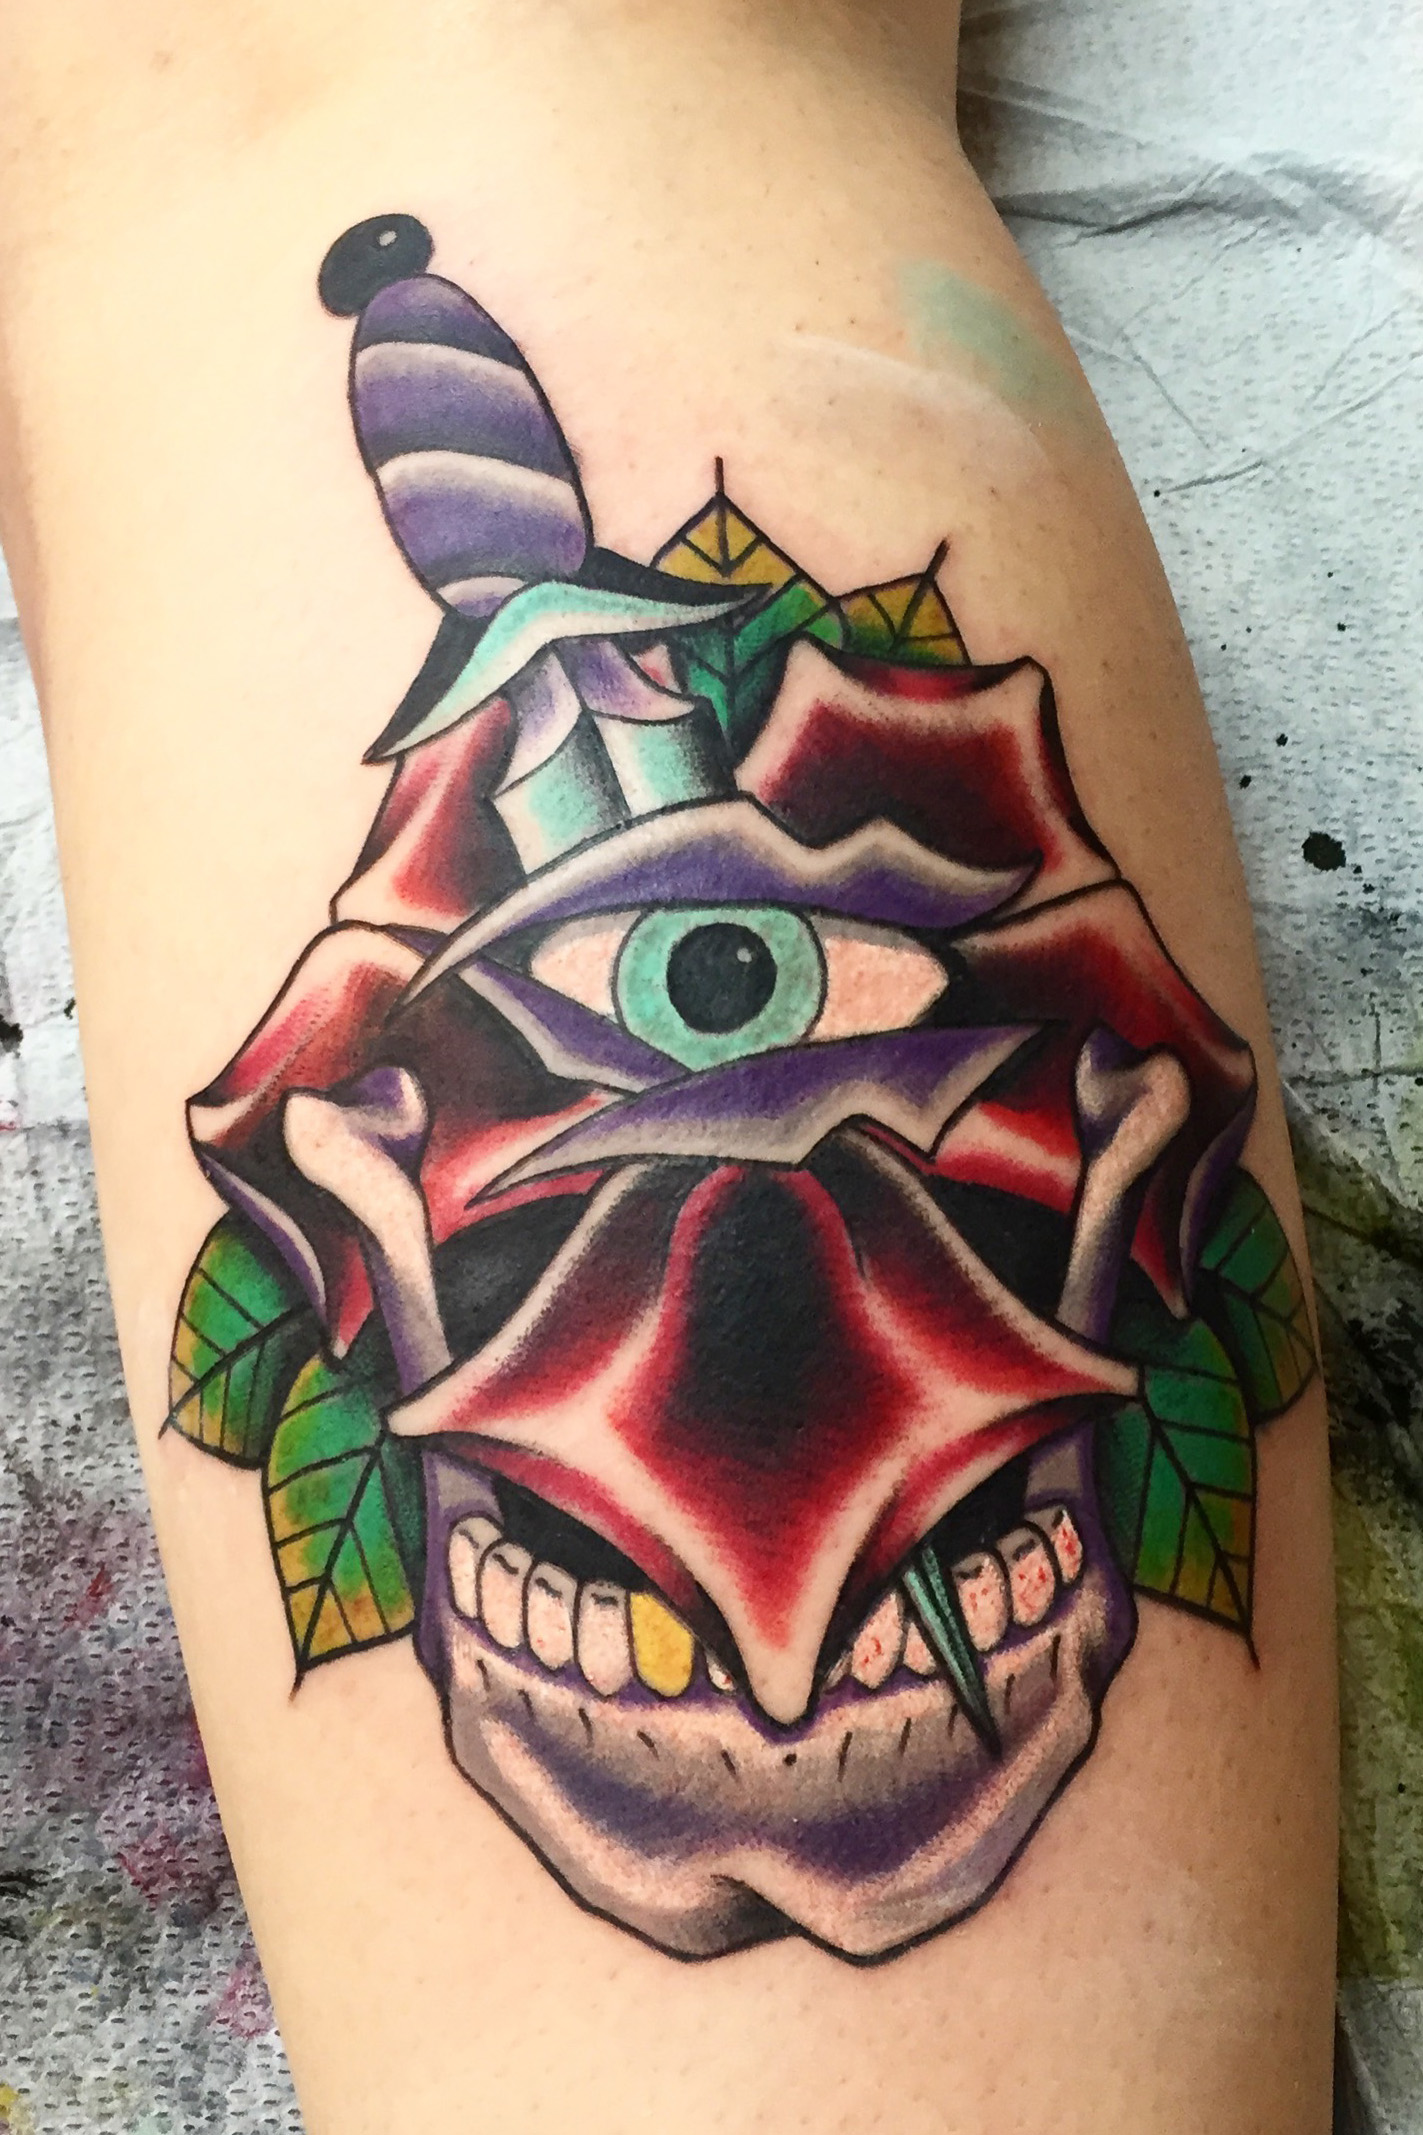 Cyclops skull with dagger and rose.  Neo Traditional color tattoo on leg half sleeve.